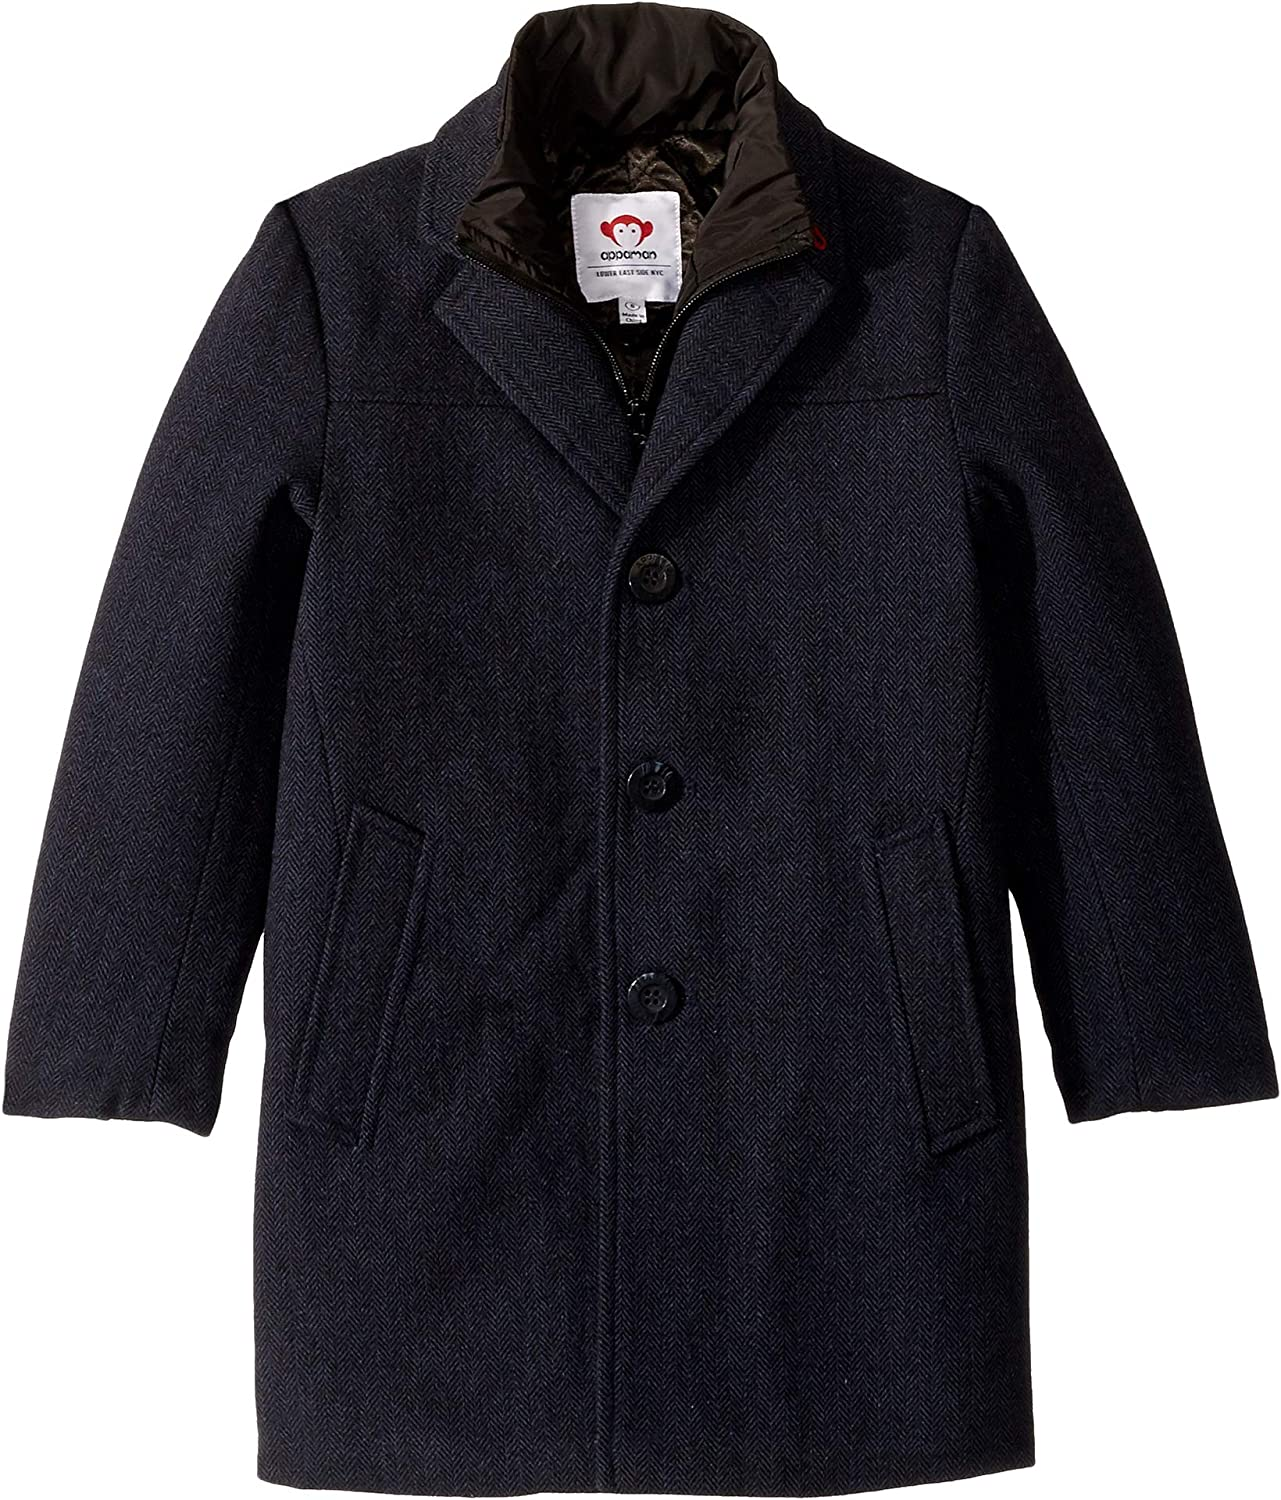 Appaman Kids Mens Double Lined Zip and Button Up City Overcoat (Toddler/Little Kids/Big Kids)